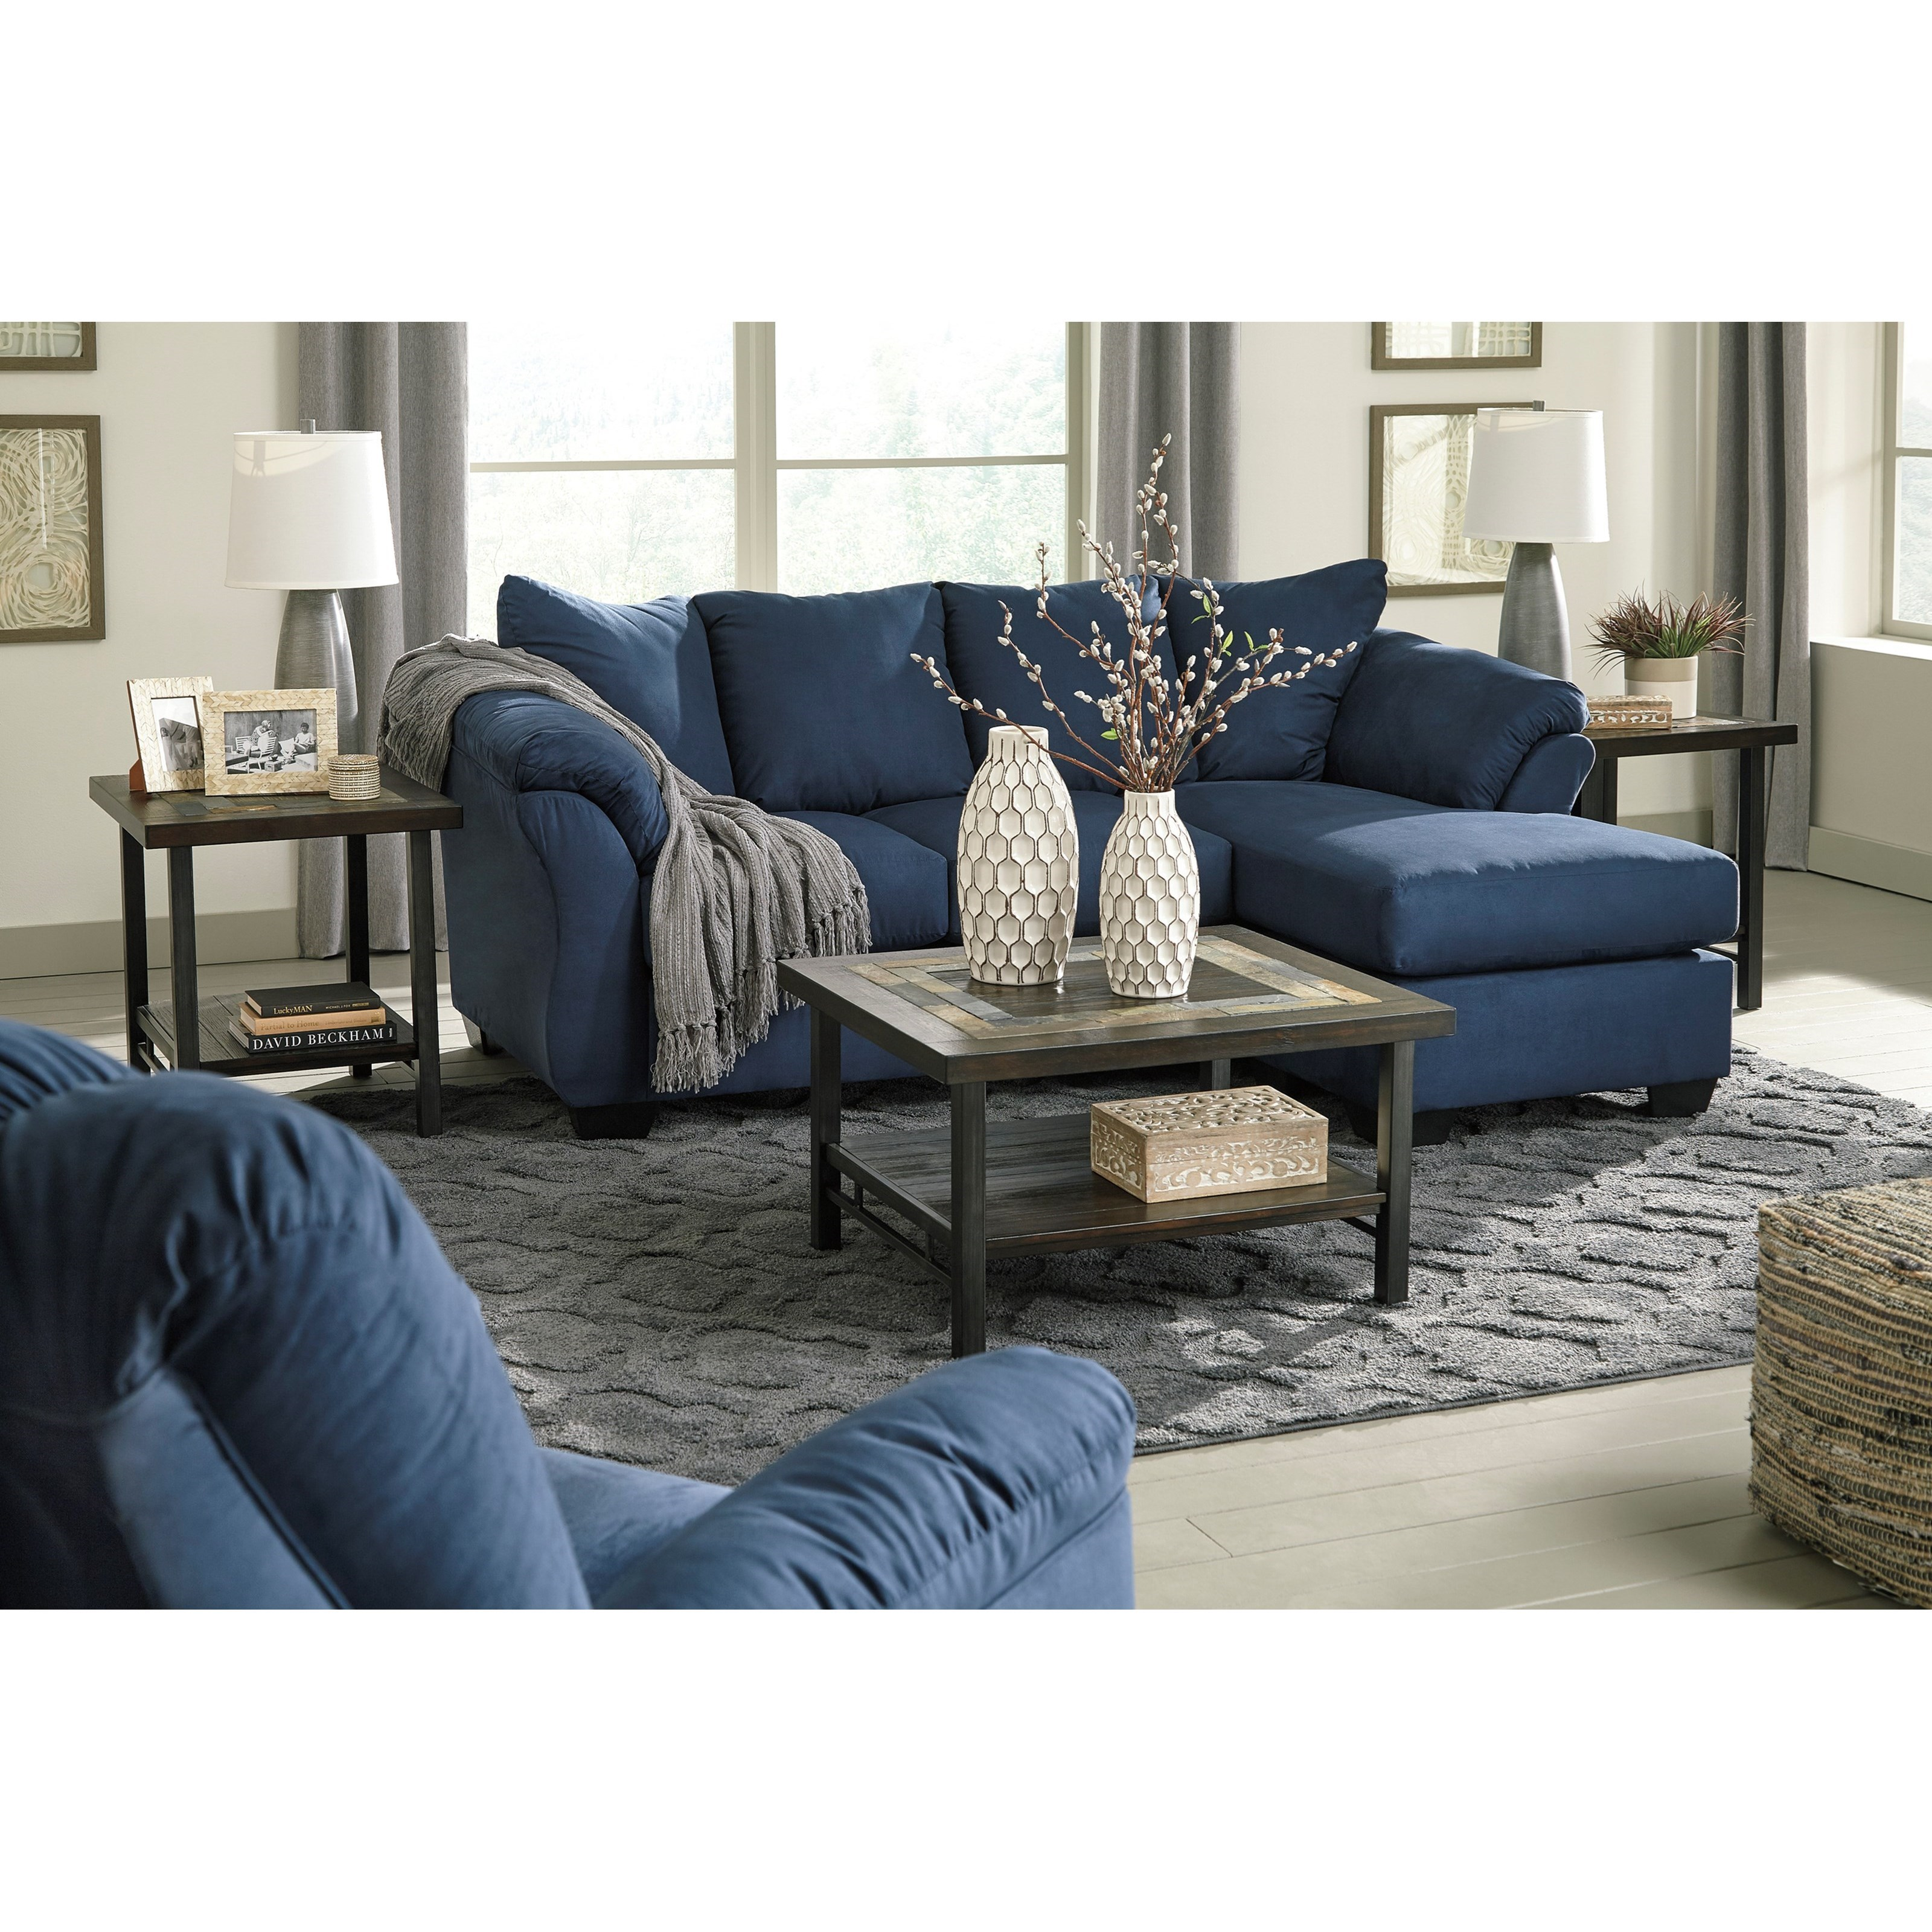 Signature Design By Ashley Darcy Blue Stationary Living Room Group Value City Furniture